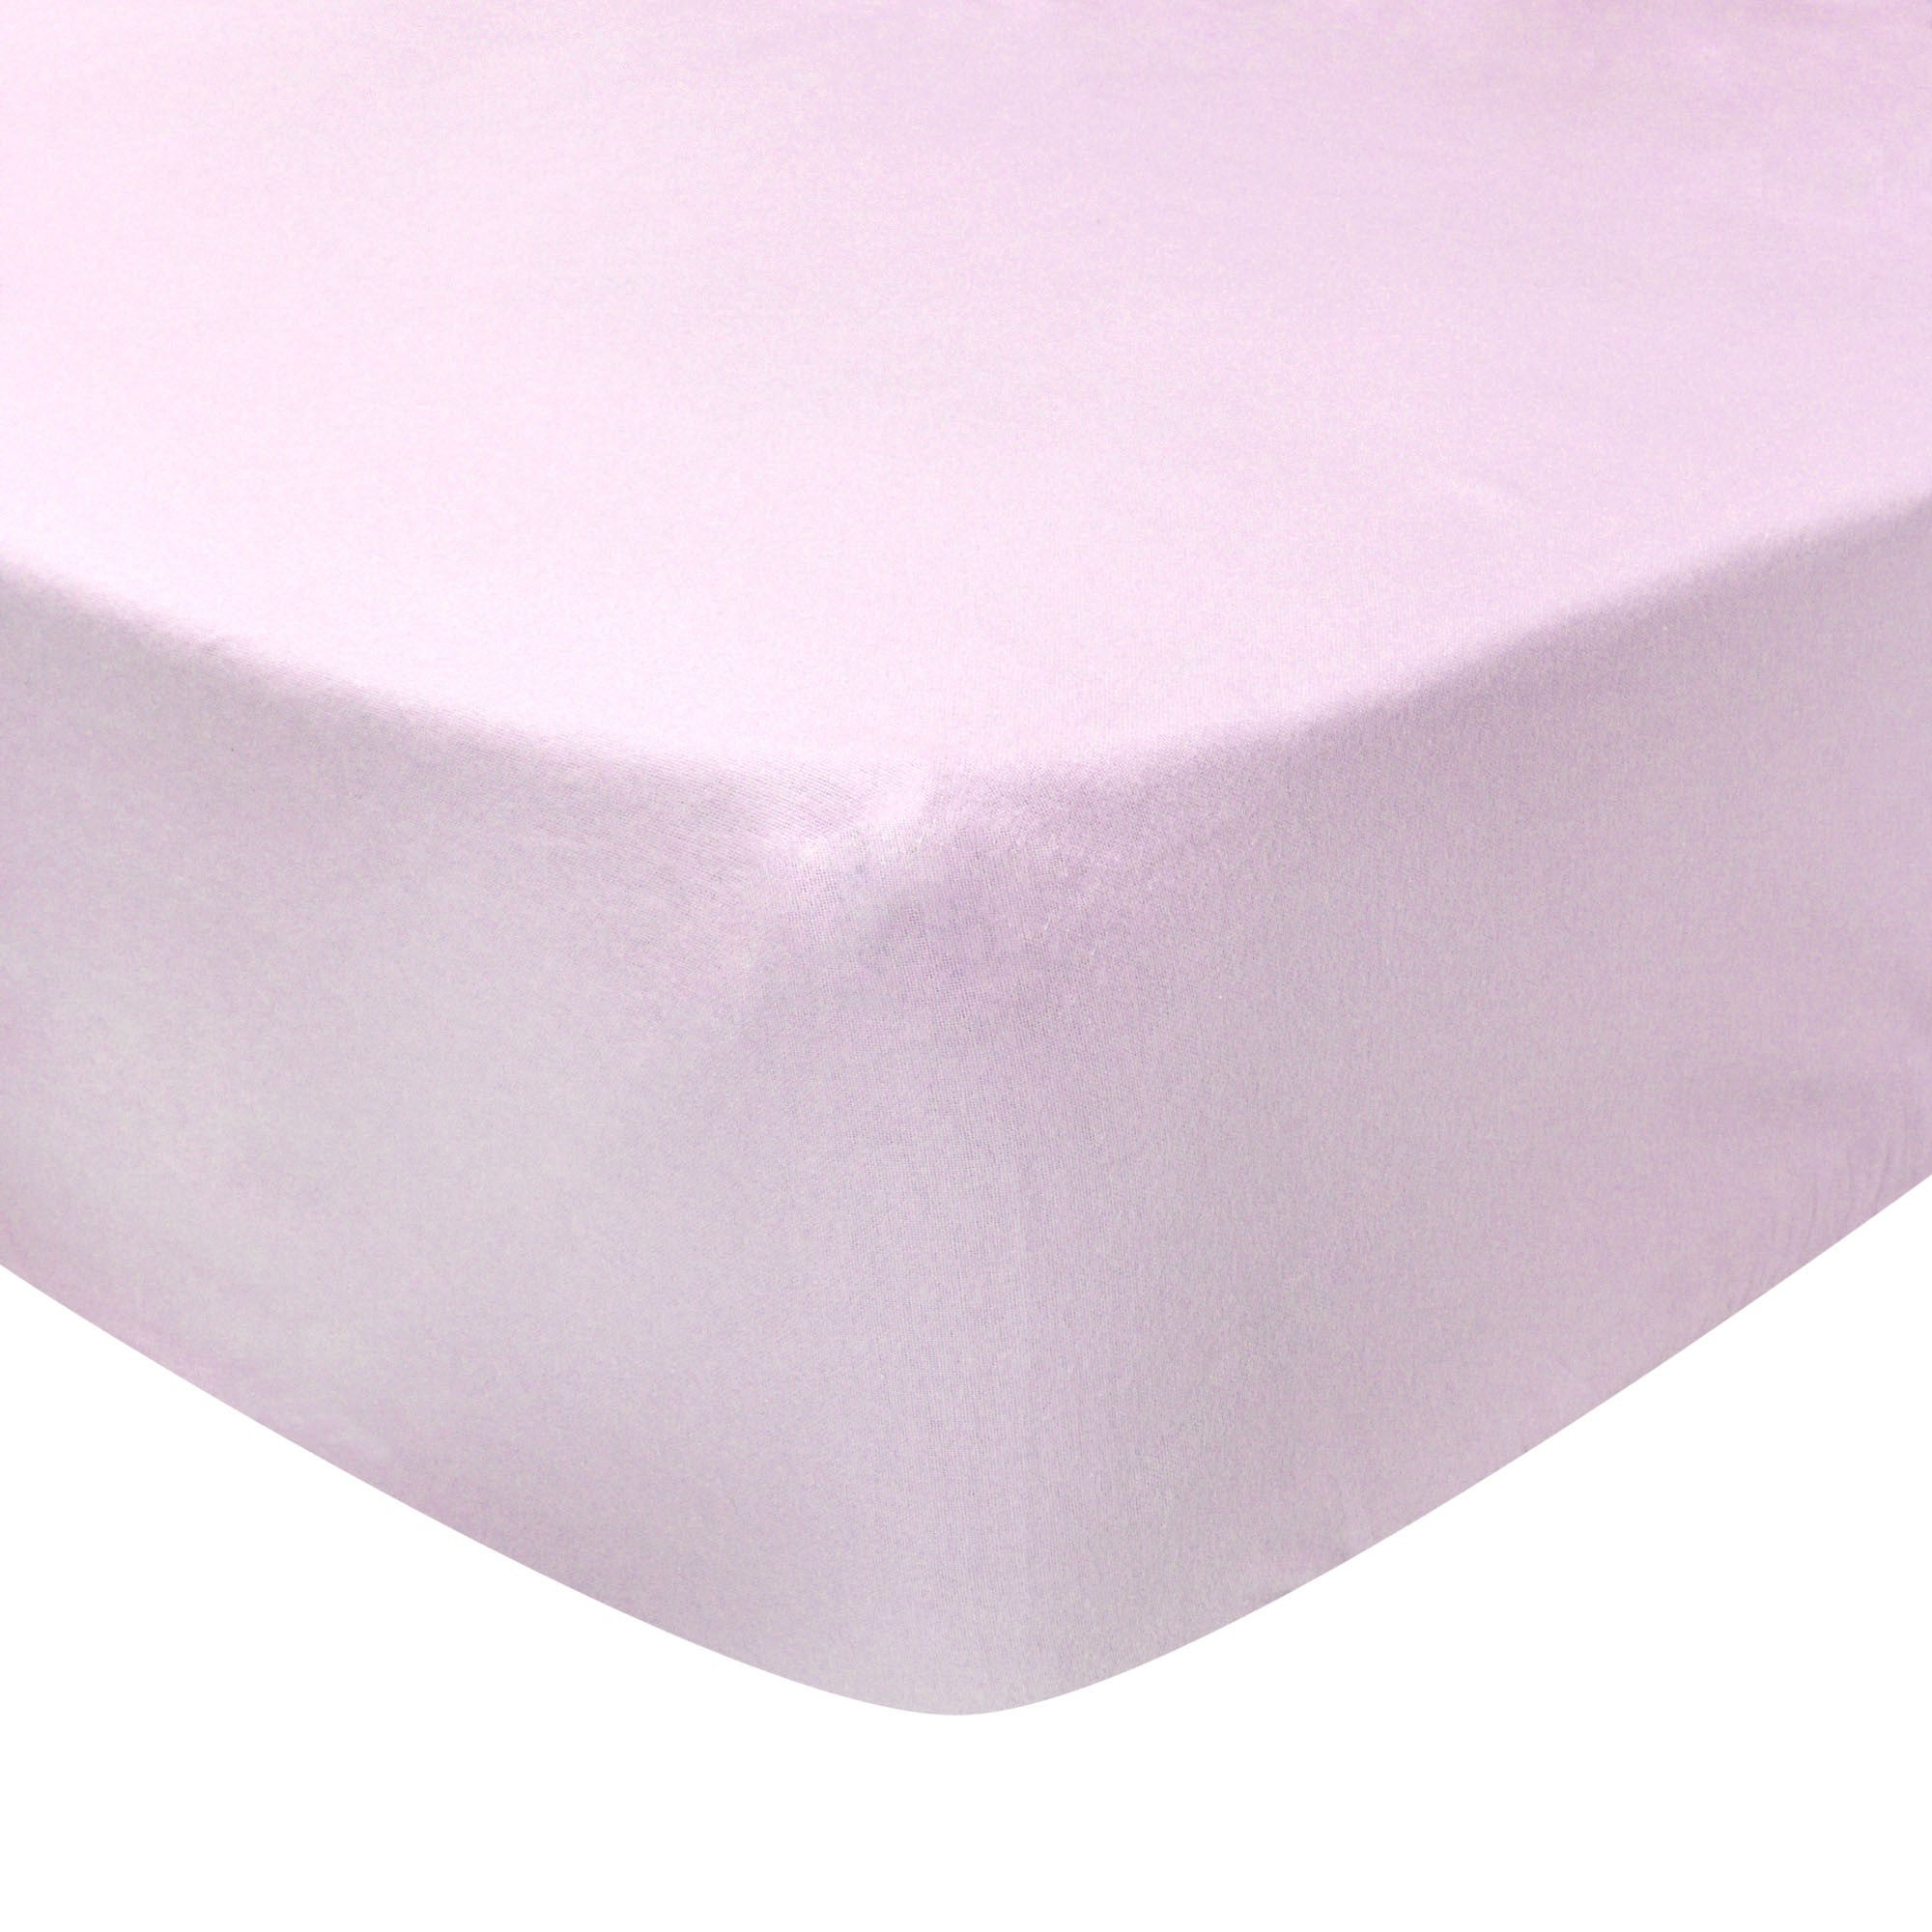 Photo of Luxury brushed cotton standard 28cm fitted sheet pale pink